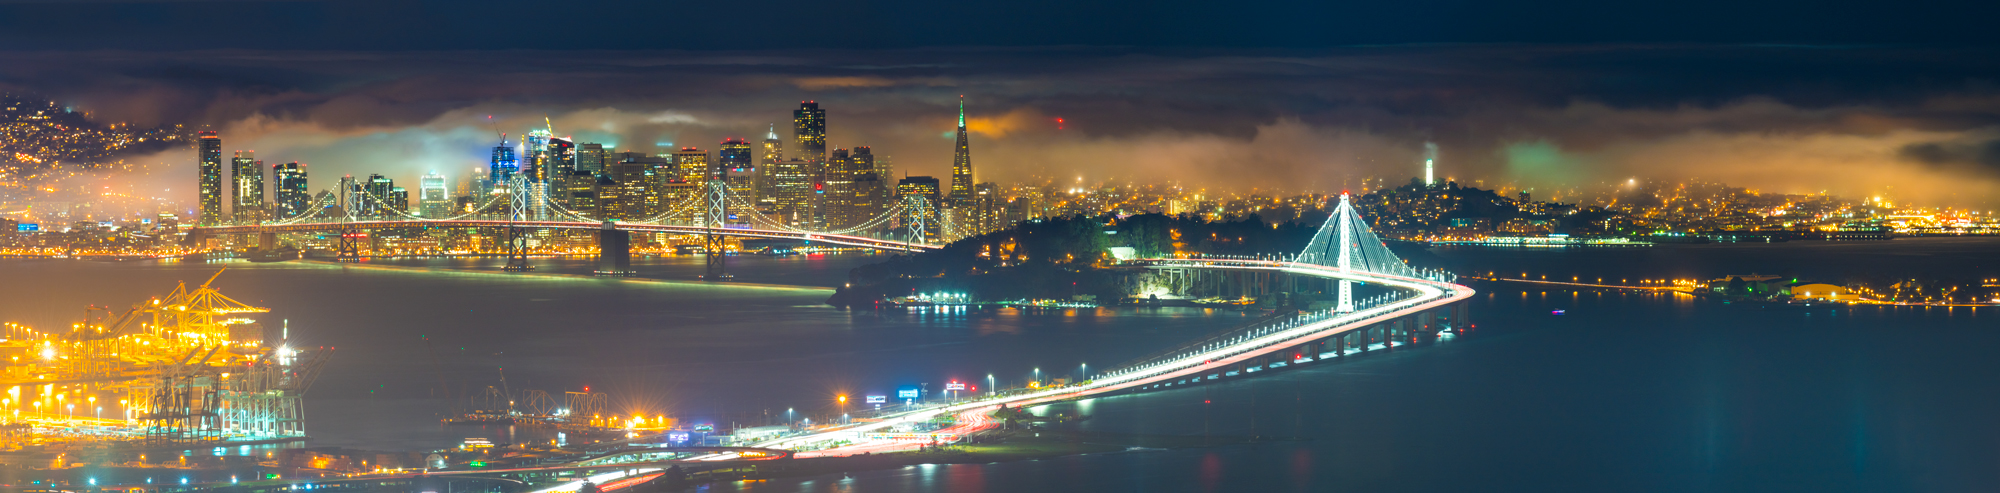 Oakland Hills San Francisco East Bay Fog Bay Bridge Emeryville Berkeley Grizzly Peak Skyline Drive Panorama Fine Art Landscape Photography Mark Lilly